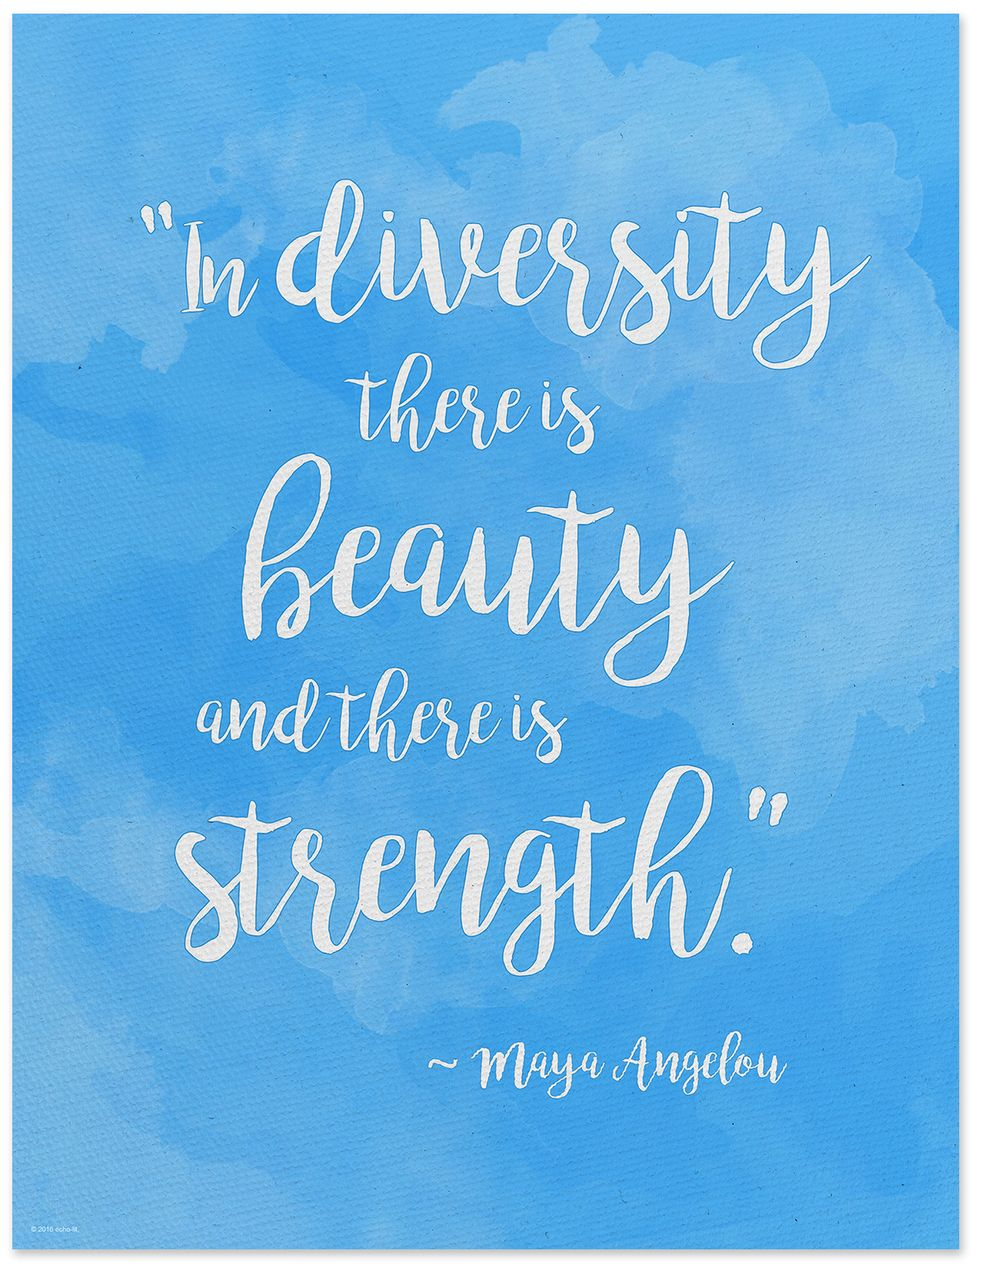 Diversity Quotes Delectable Beauty And Strength In Diversity  Maya Angelou Quote Posterfine .